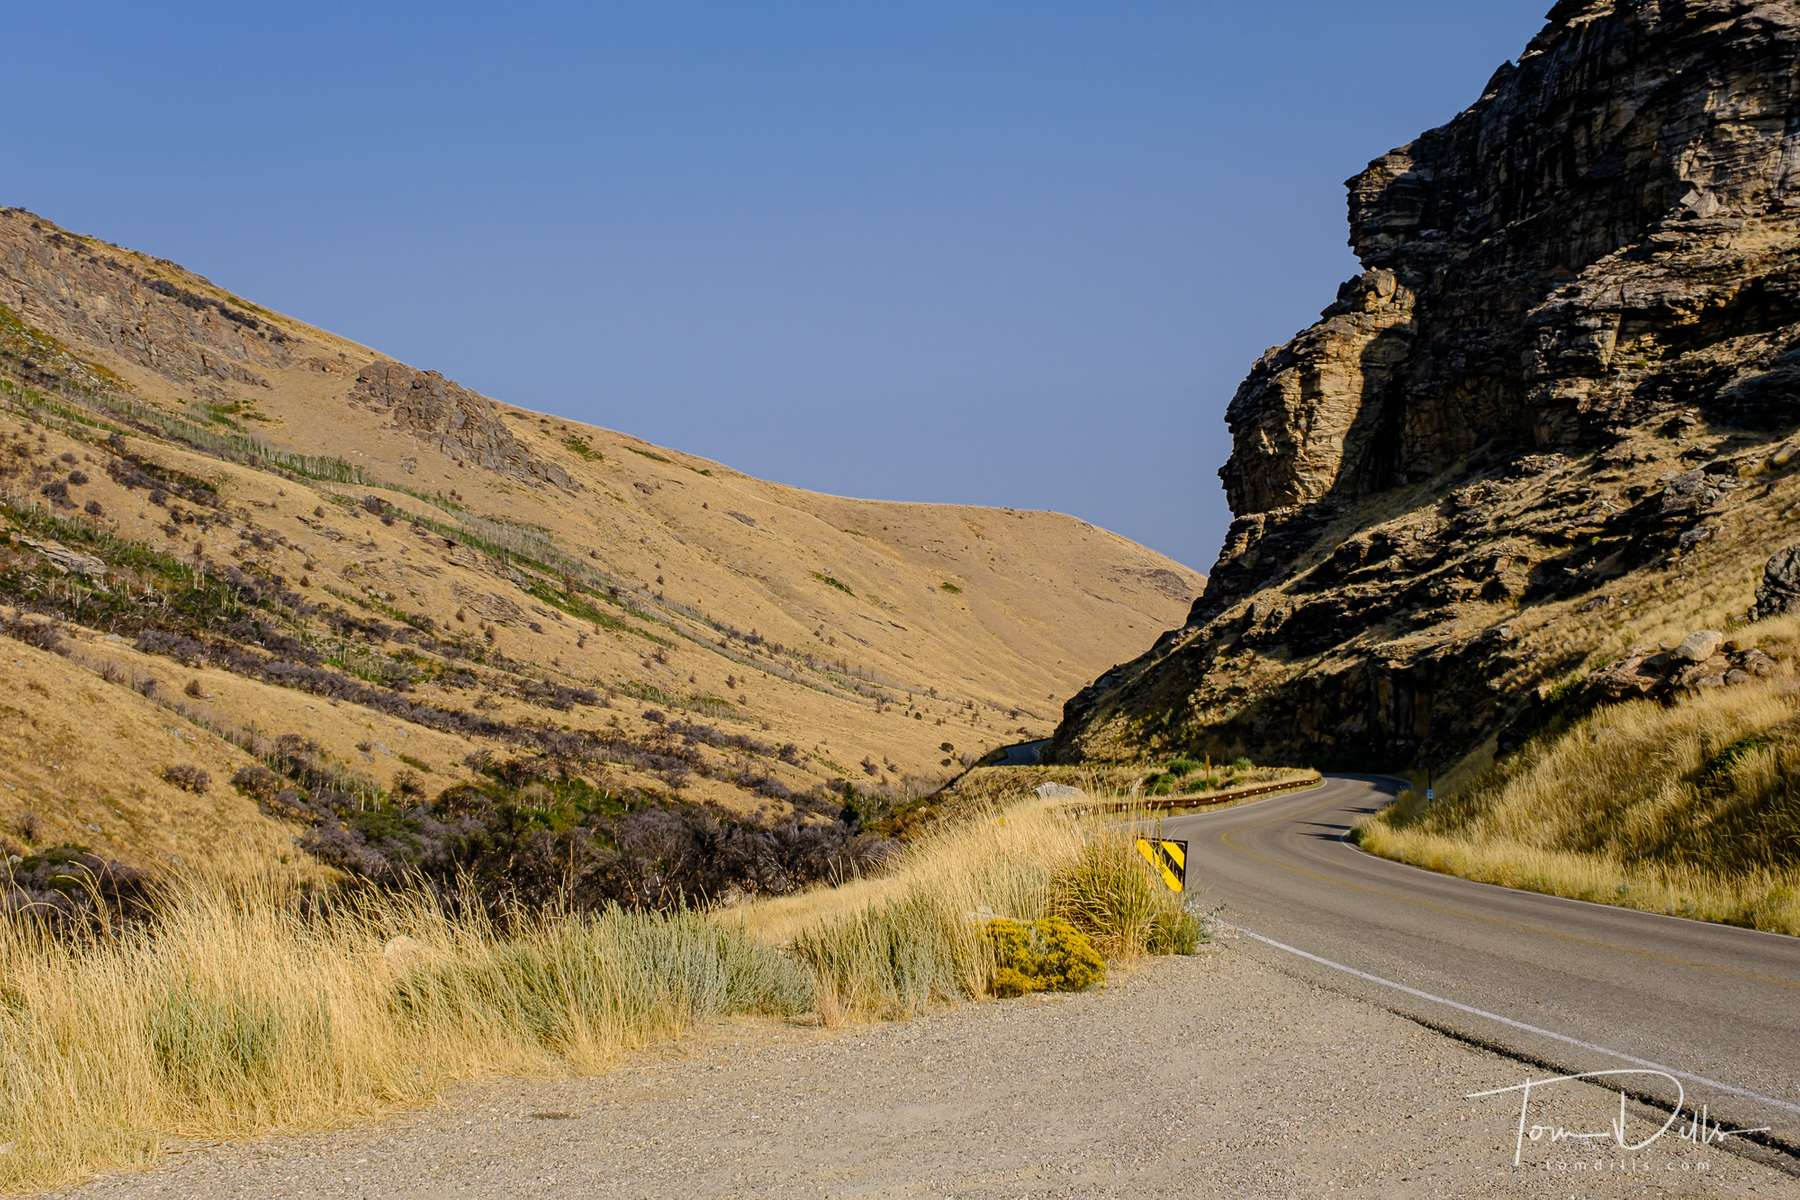 Lamoille Canyon Scenic Byway, part of the Humboldt-Toiyabe National Forest in eastern Nevada near Elko